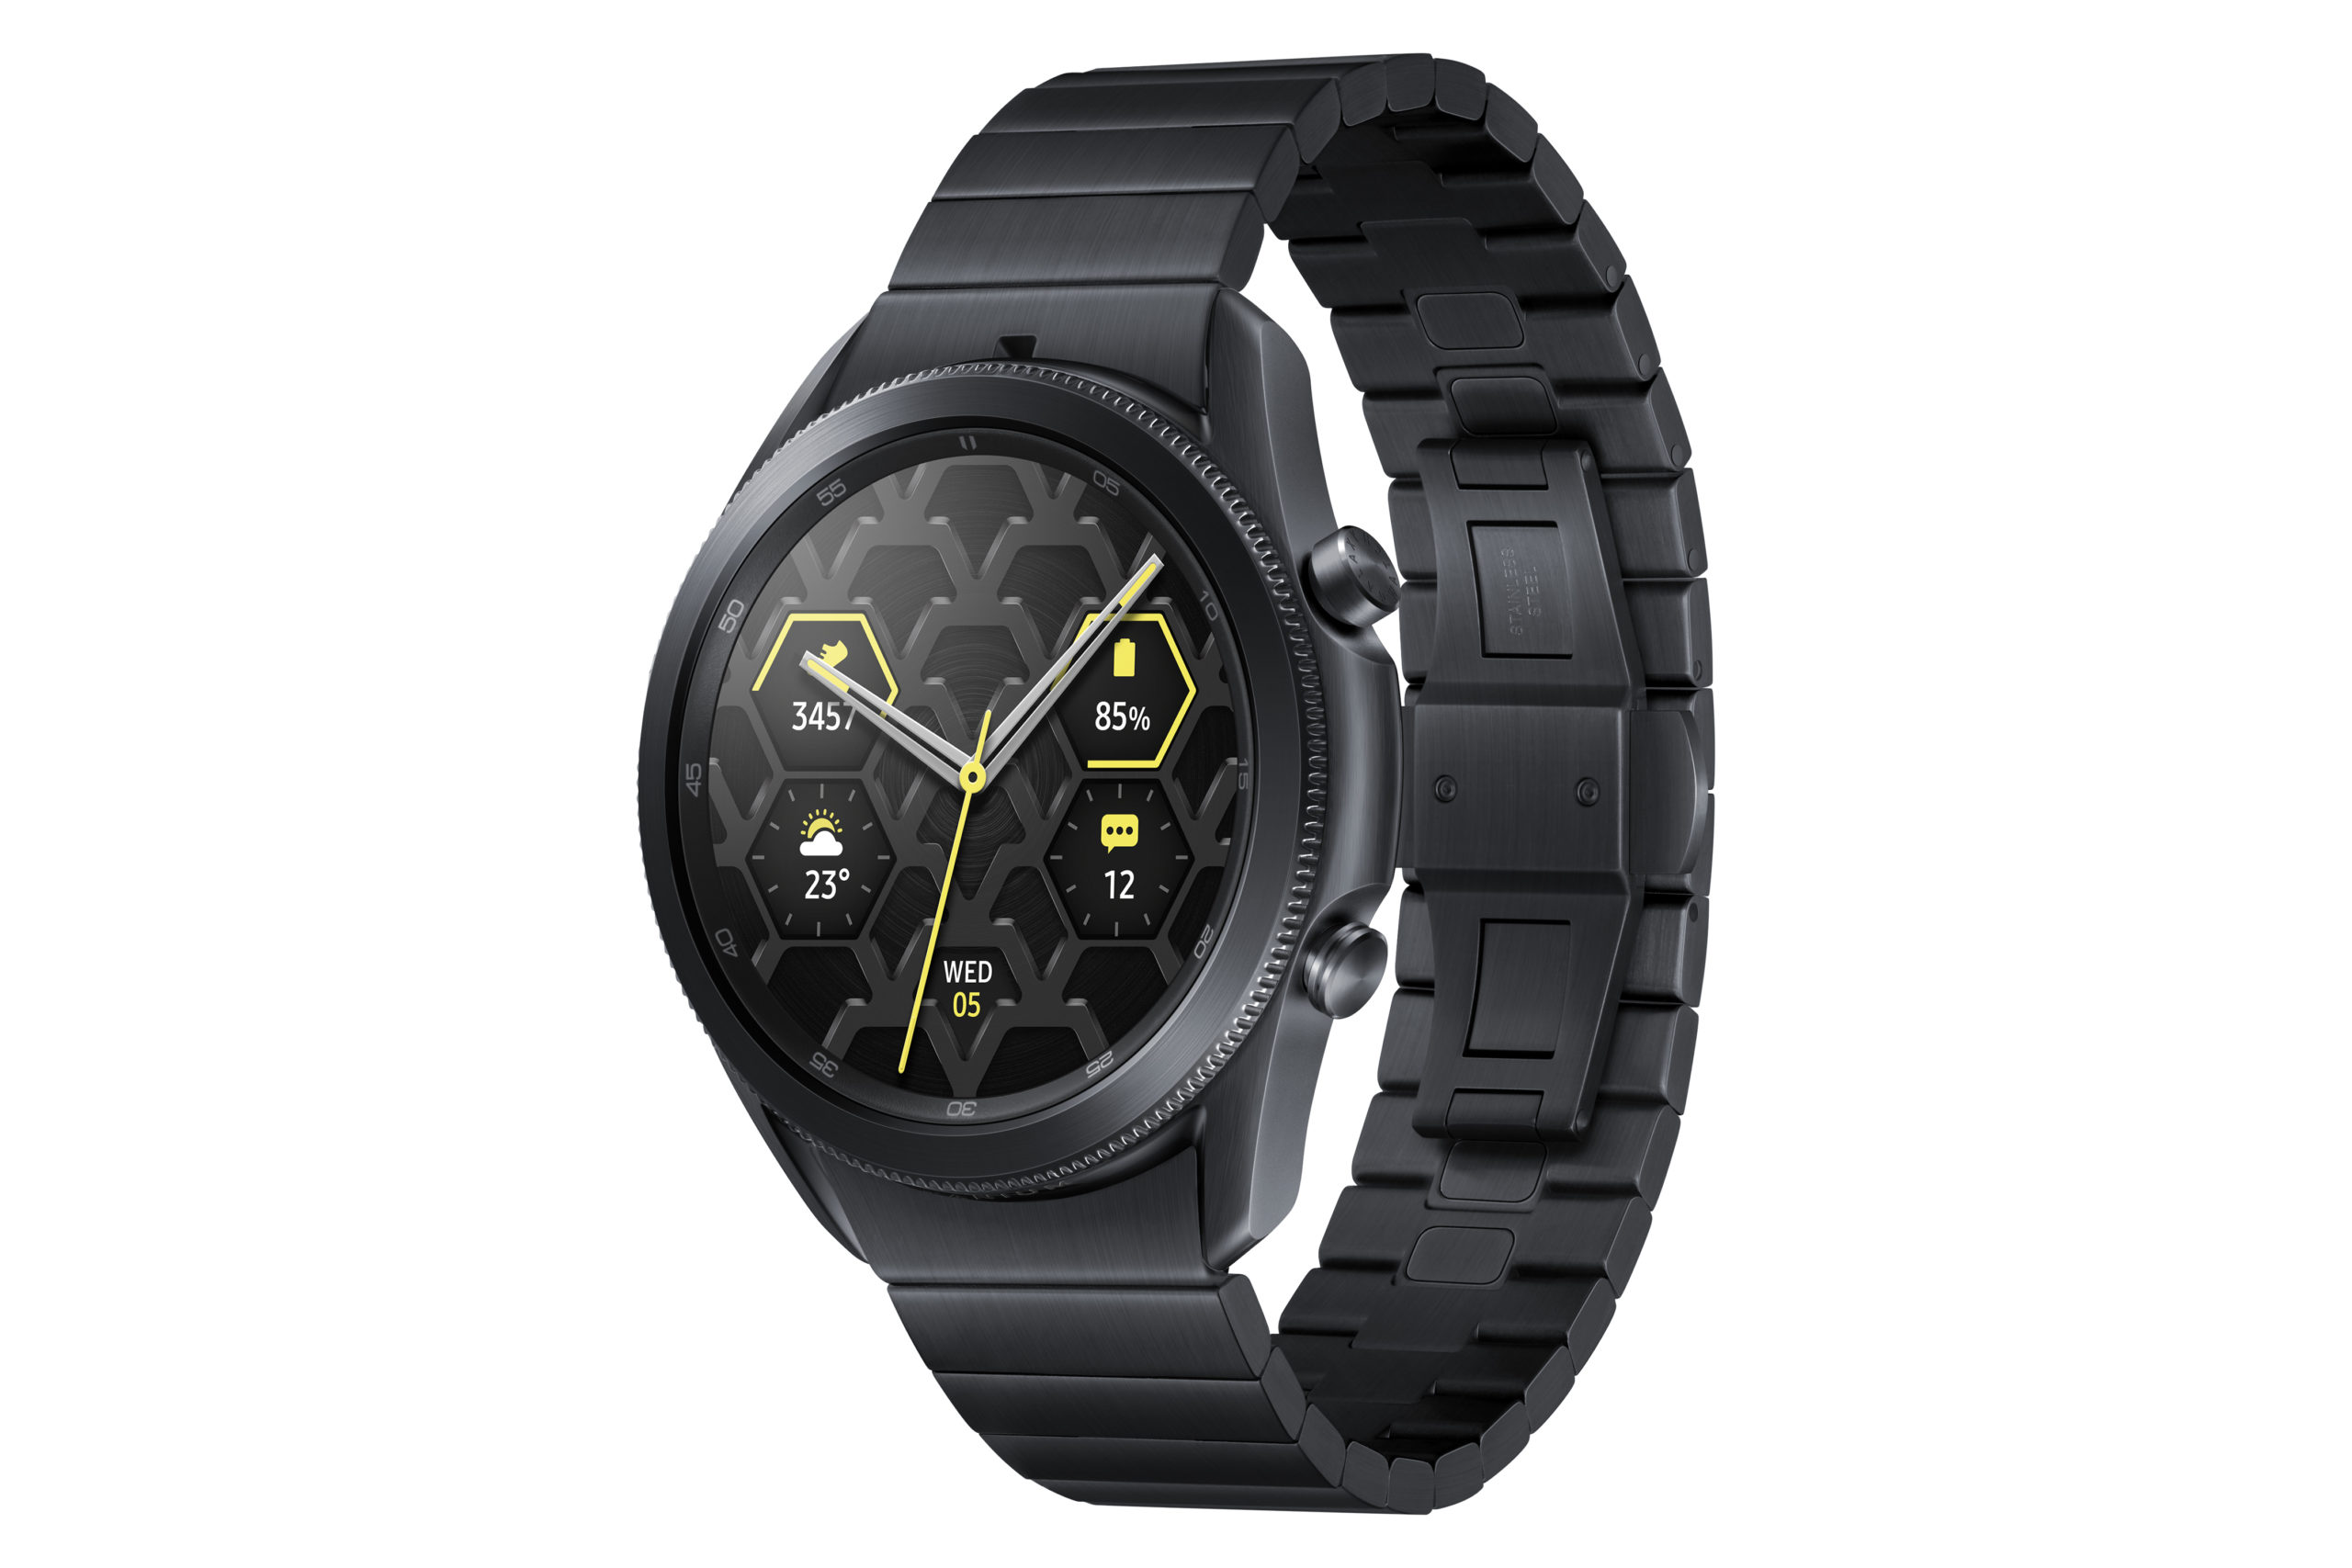 New Galaxy Watch 3 Model Gets Silly High Price